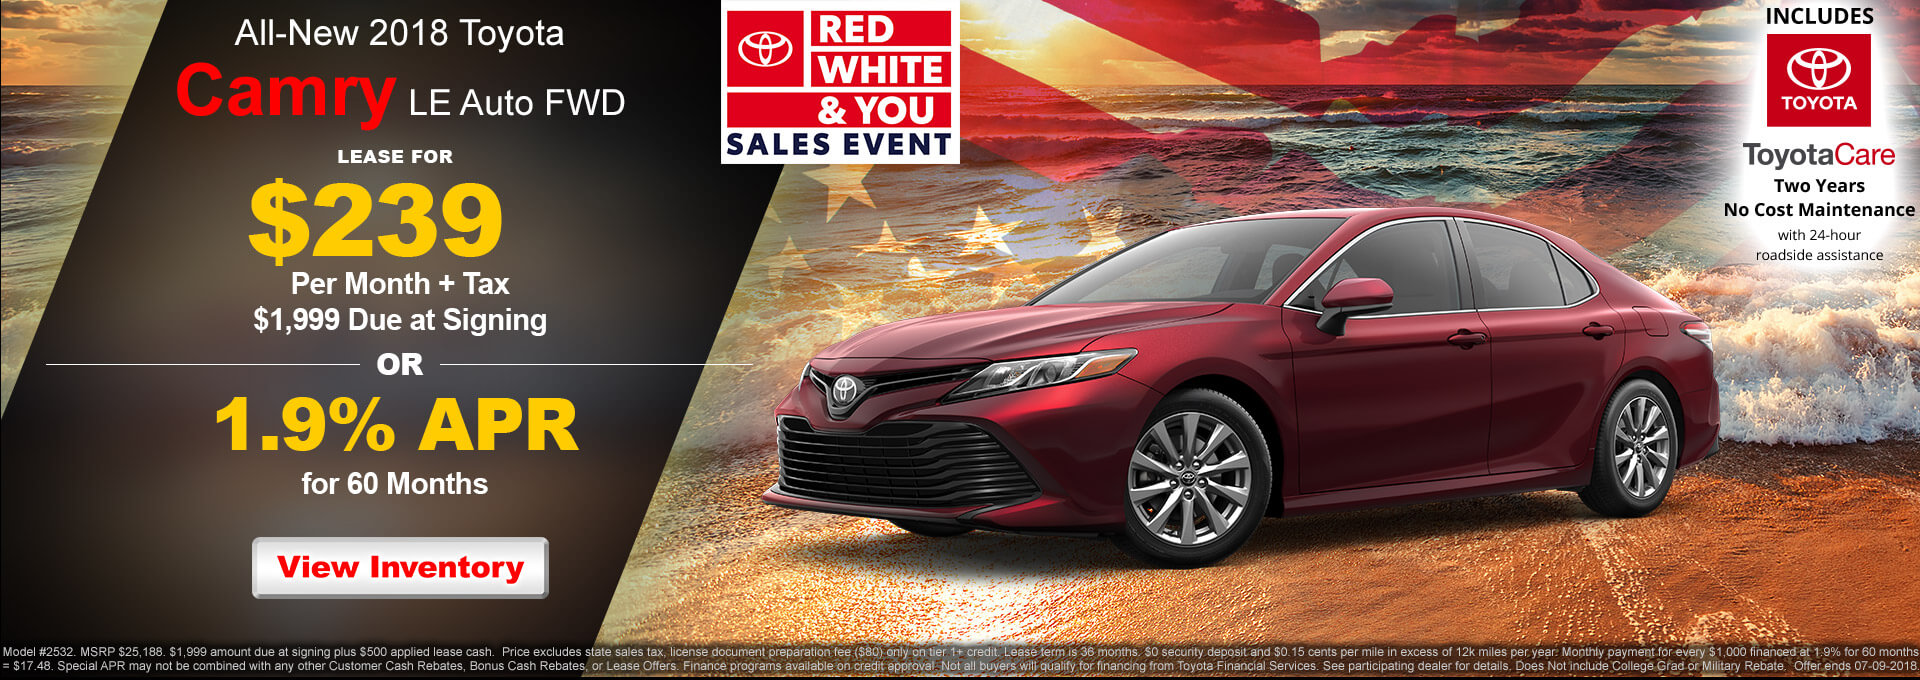 2018 Toyota Camry LE $239